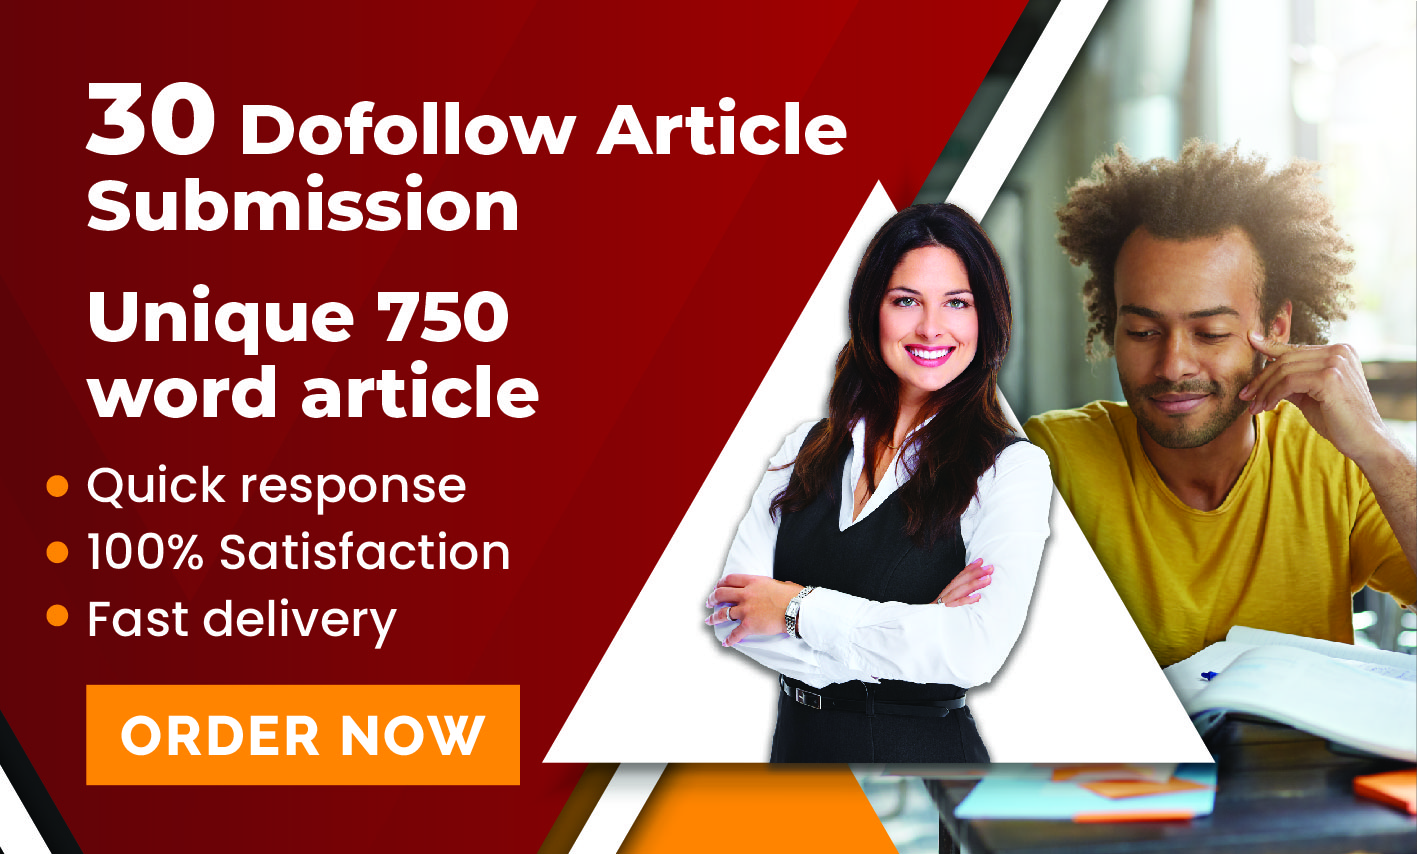 provide 40+ high quality 30 dofollow article submission links